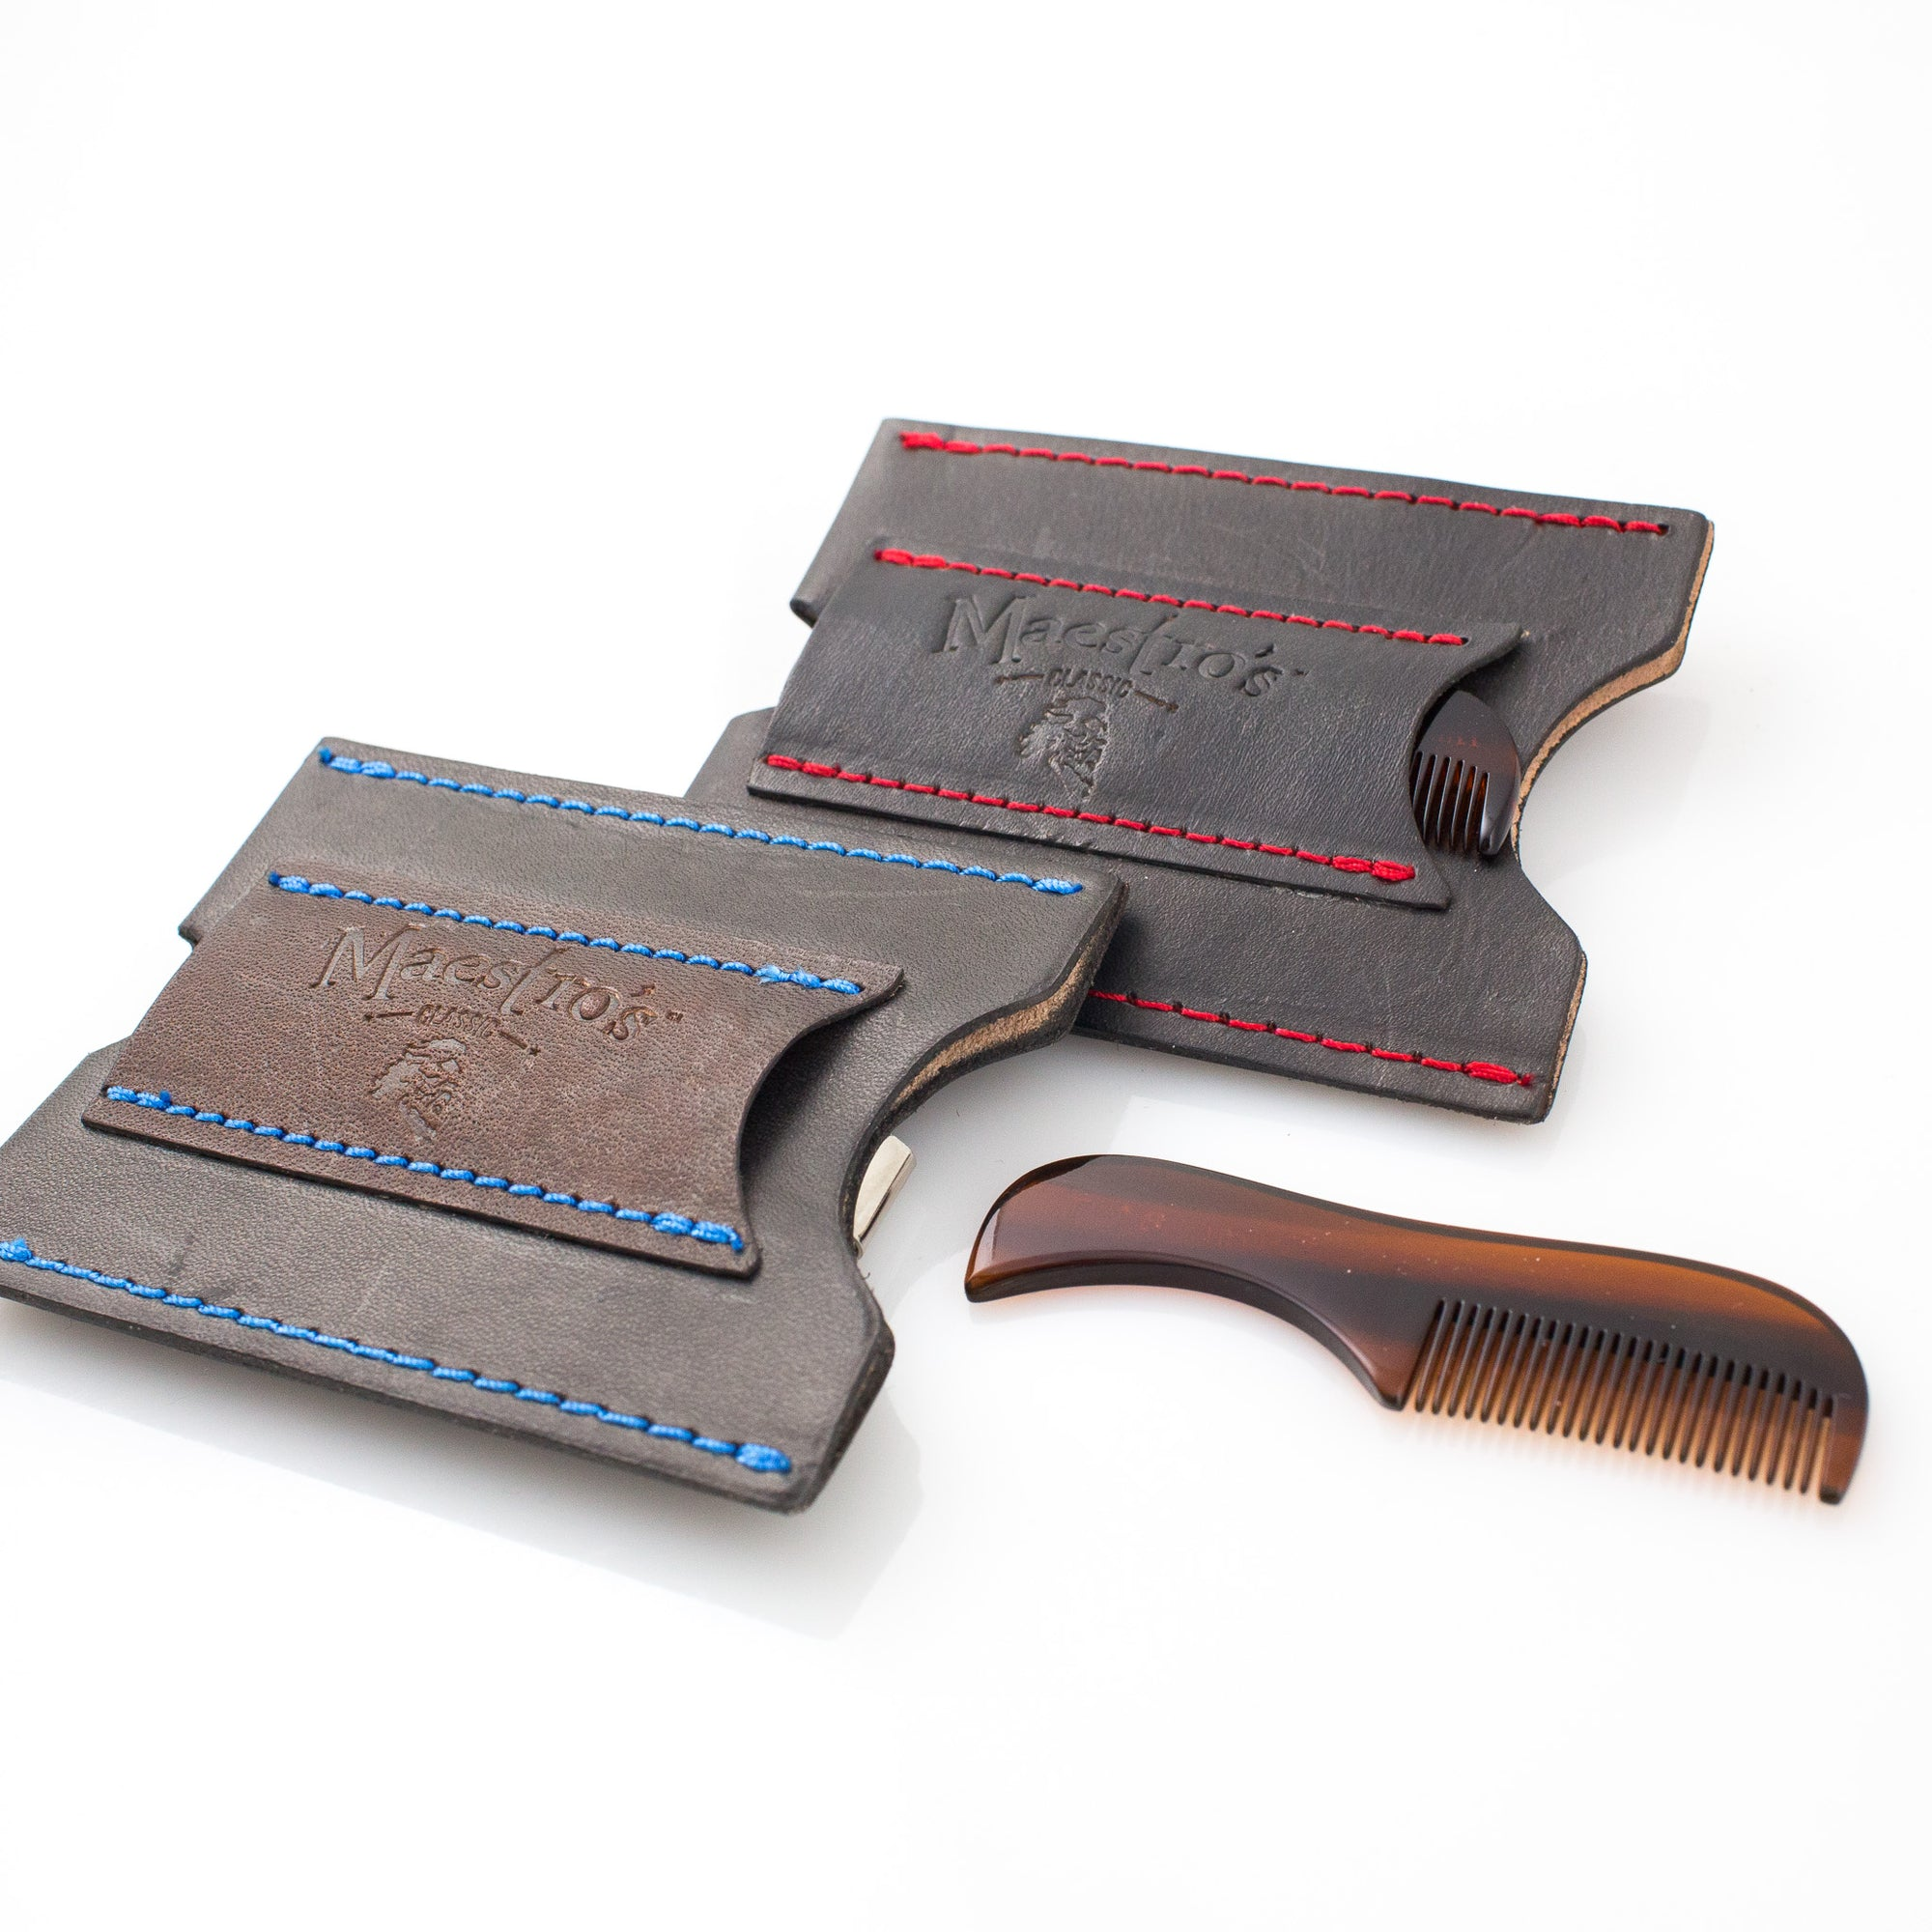 Maestro's Only - Minimalist Wallet with Stache Comb